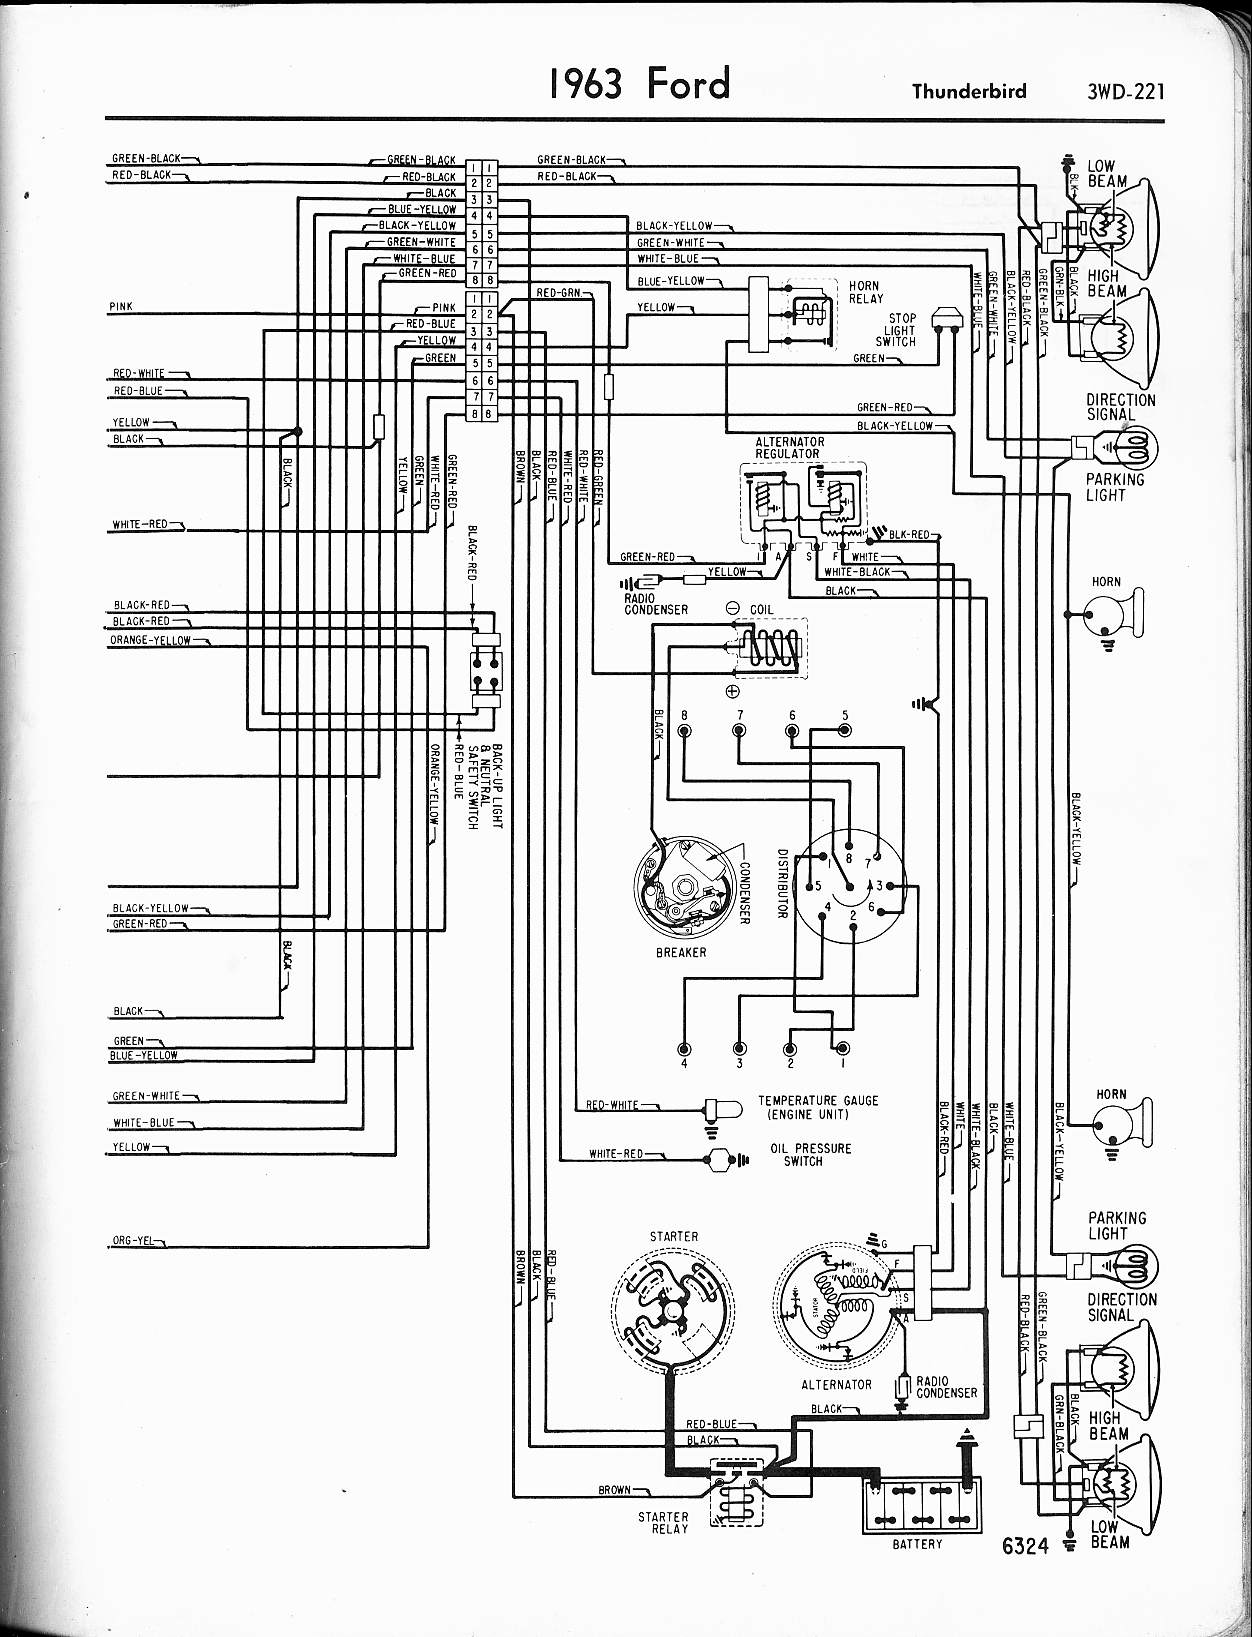 [TBQL_4184]  1956 Thunderbird Wiring Diagram Pdf | Wiring Diagram | 1966 Corvette Wiring Diagram Pdf |  | Wiring Diagram - AutoScout24